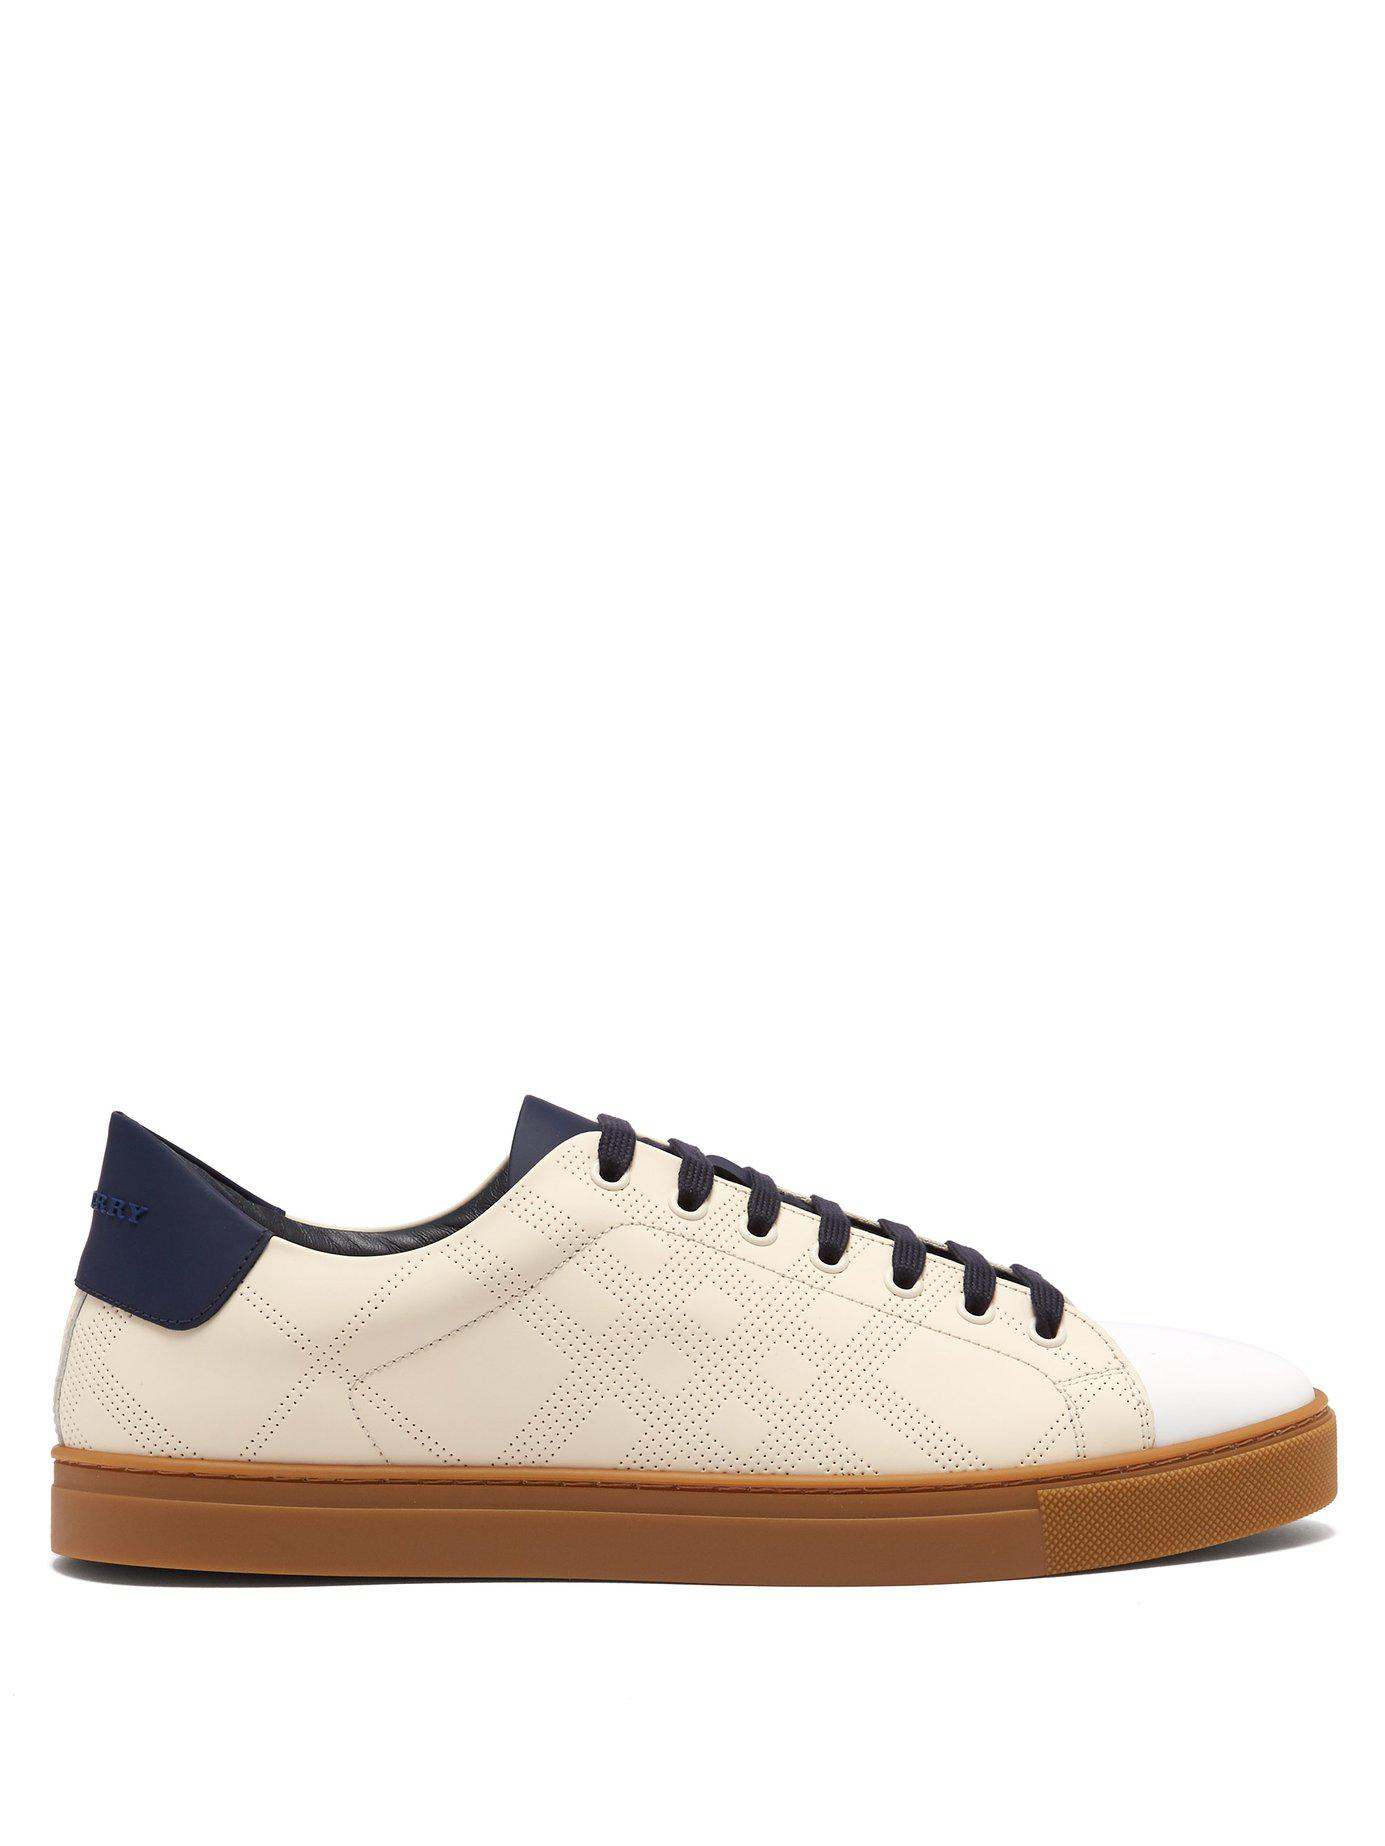 8fcaf33ed796 Lyst - Burberry Albert Perforated Low Top Leather Trainers for Men